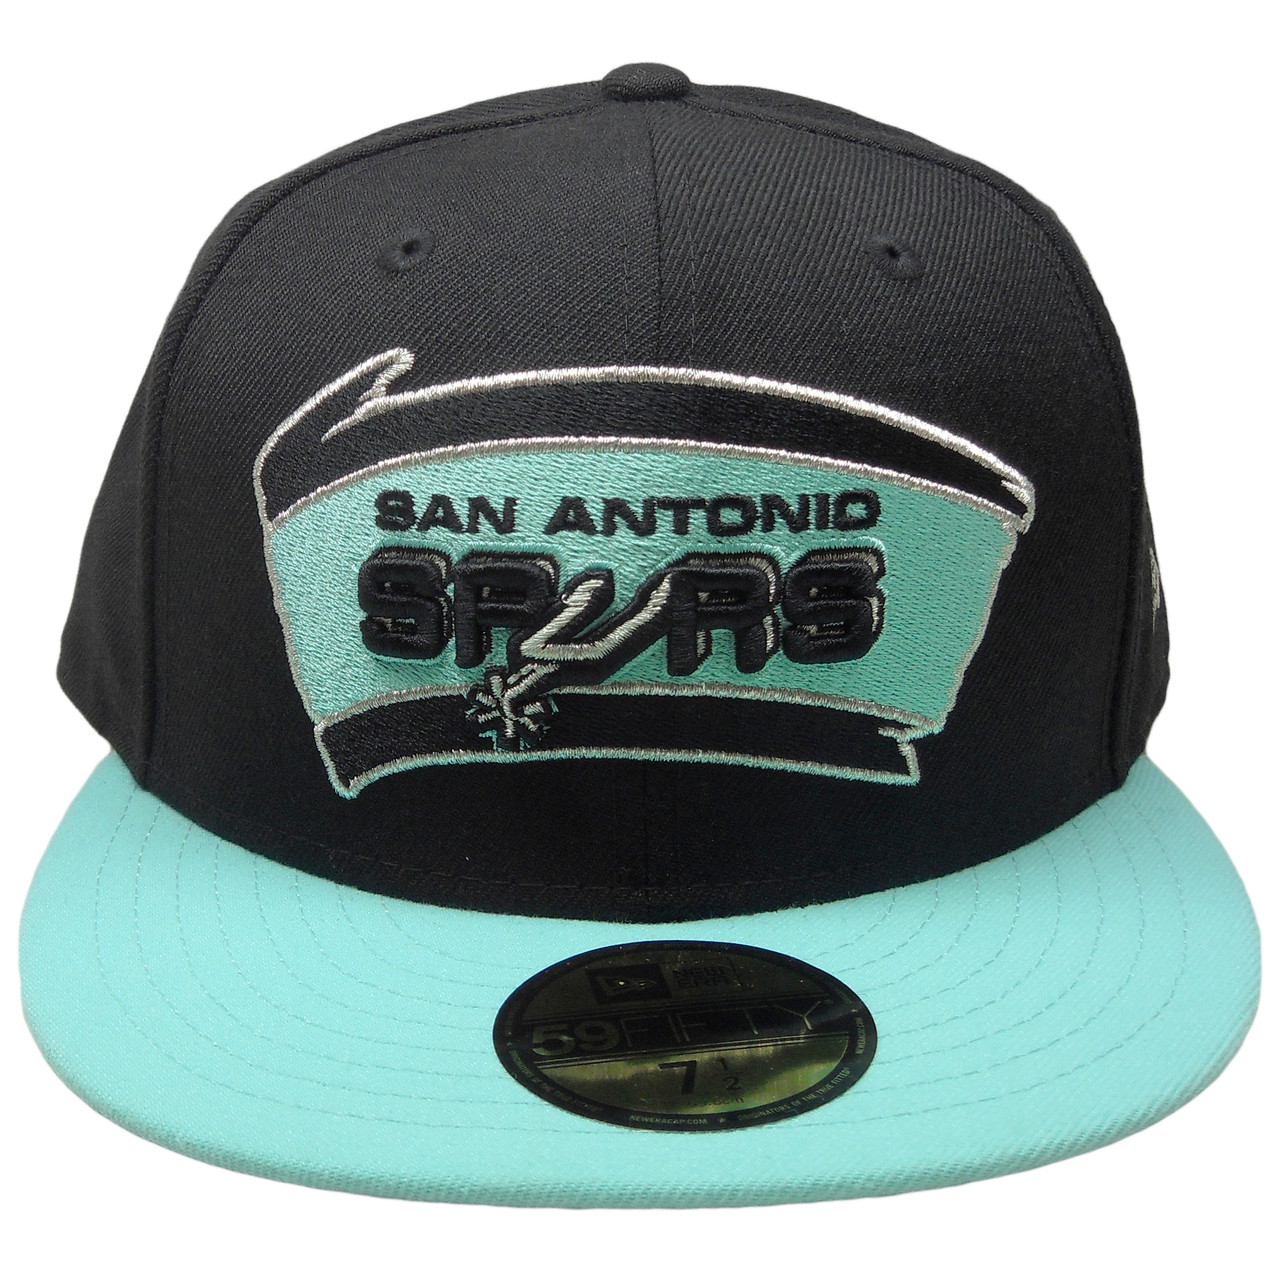 official photos d6ab6 0963e ... discount code for san antonio spurs custom new era 59fifty fitted black  mint green silver 0067a